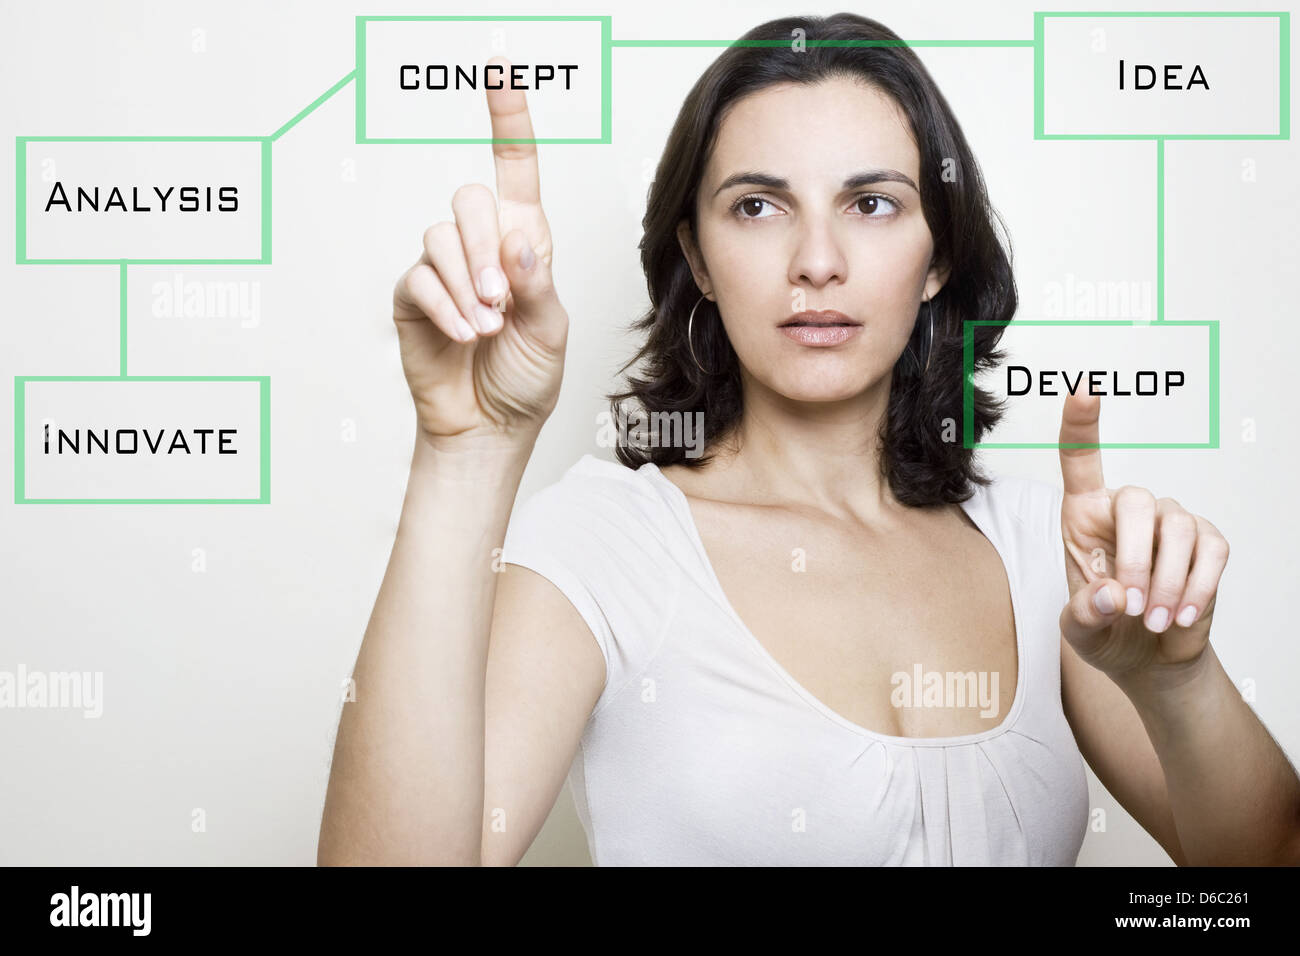 woman,development,clue,organization,cycle,virtual,visualization - Stock Image